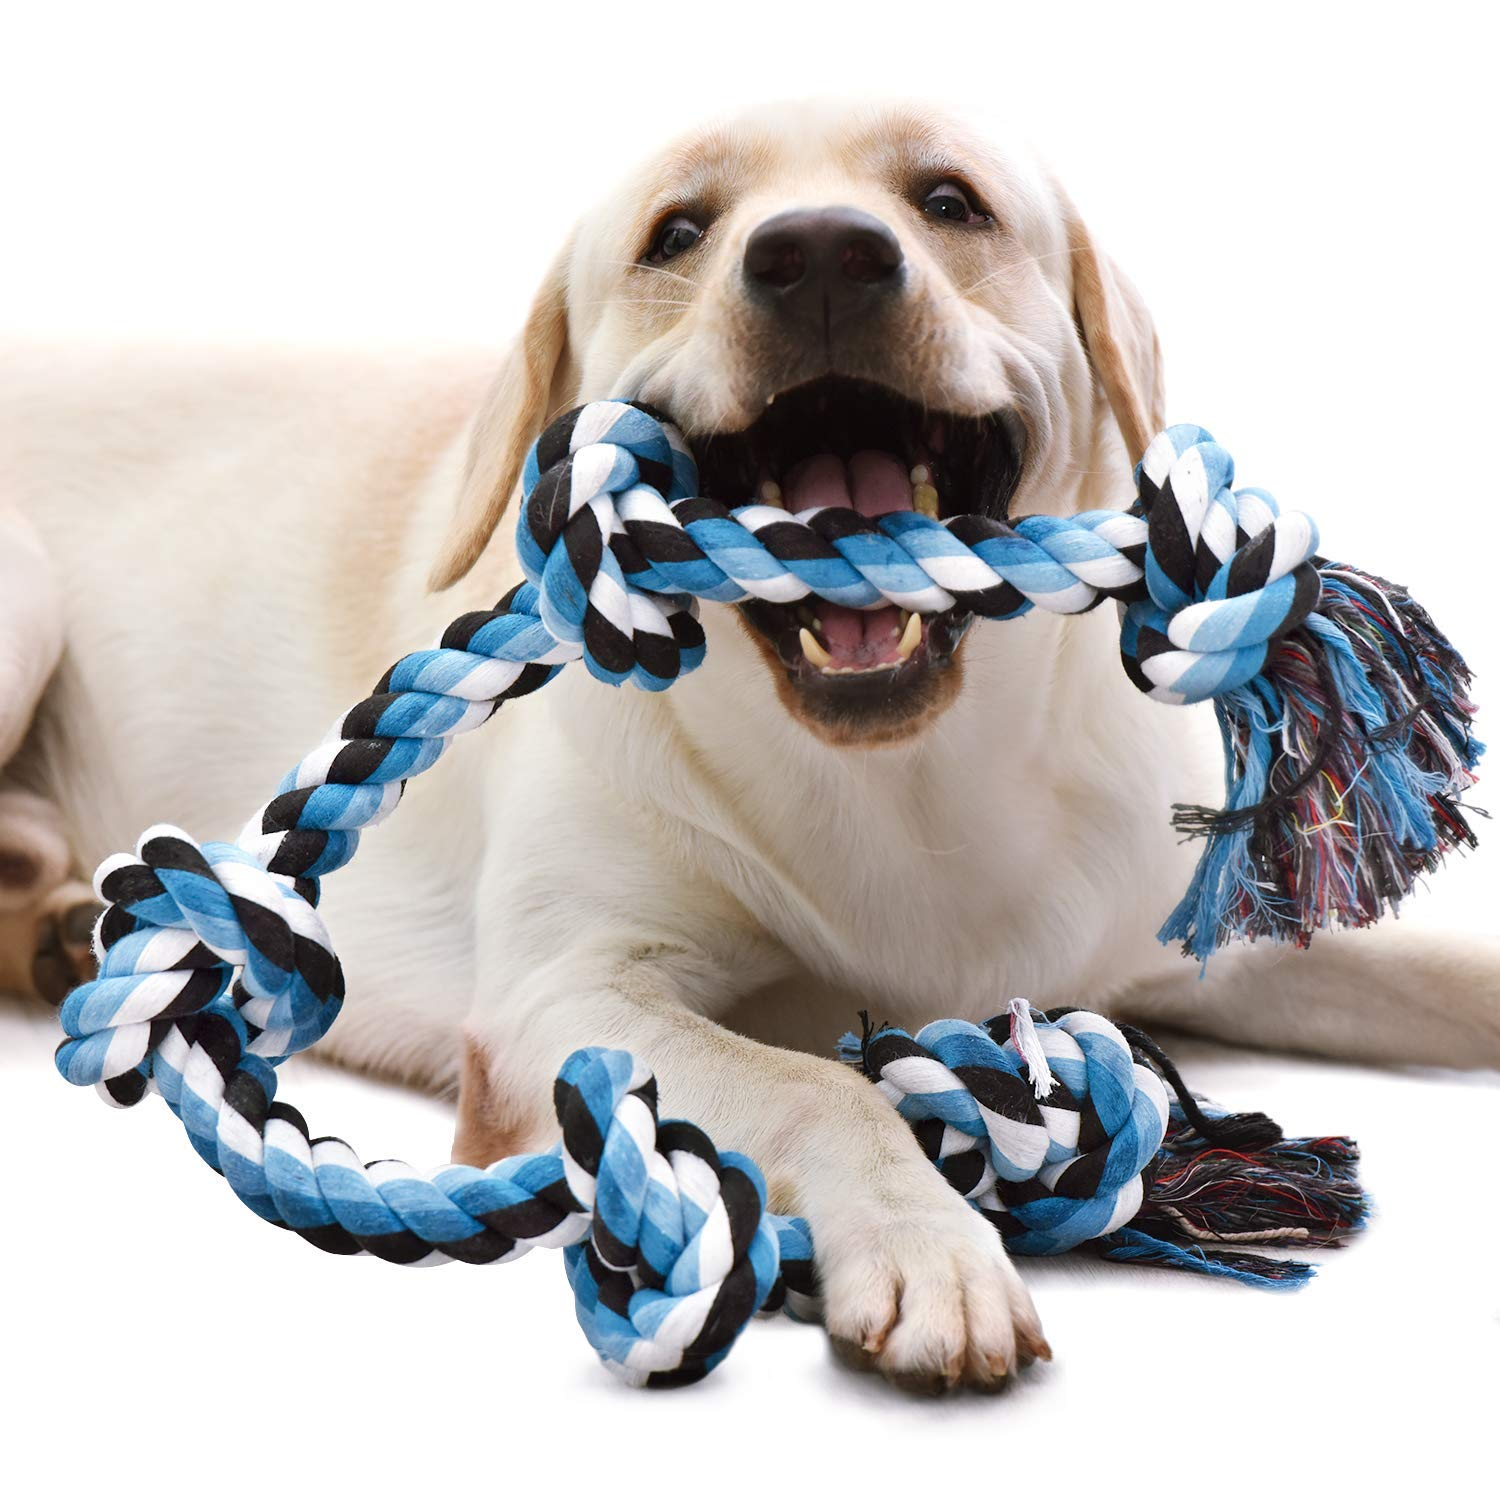 KILIKI Dog Rope Toys for Aggressive Chewers: 3 Feet 5 Knots Indestructible Dog Chew Toys Tough Nature Cotton for Medium and Large Breed by KILIKI